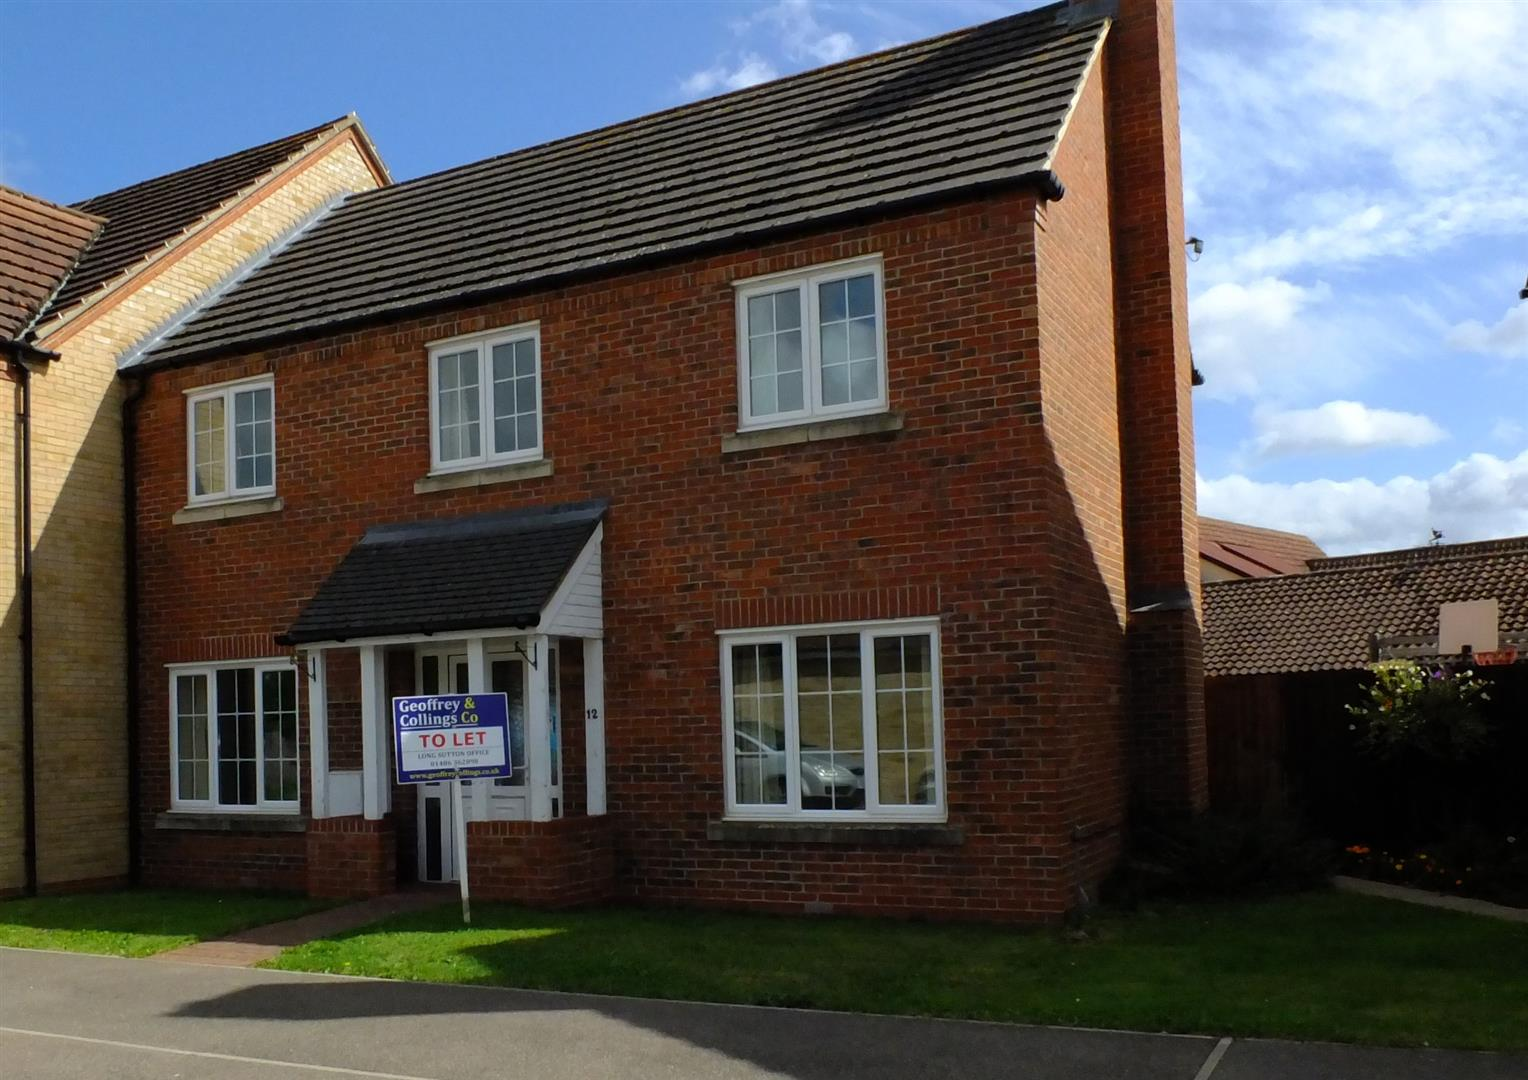 4 bed semi-detached house to rent in Sutton Bridge Spalding, PE12 9SW 0